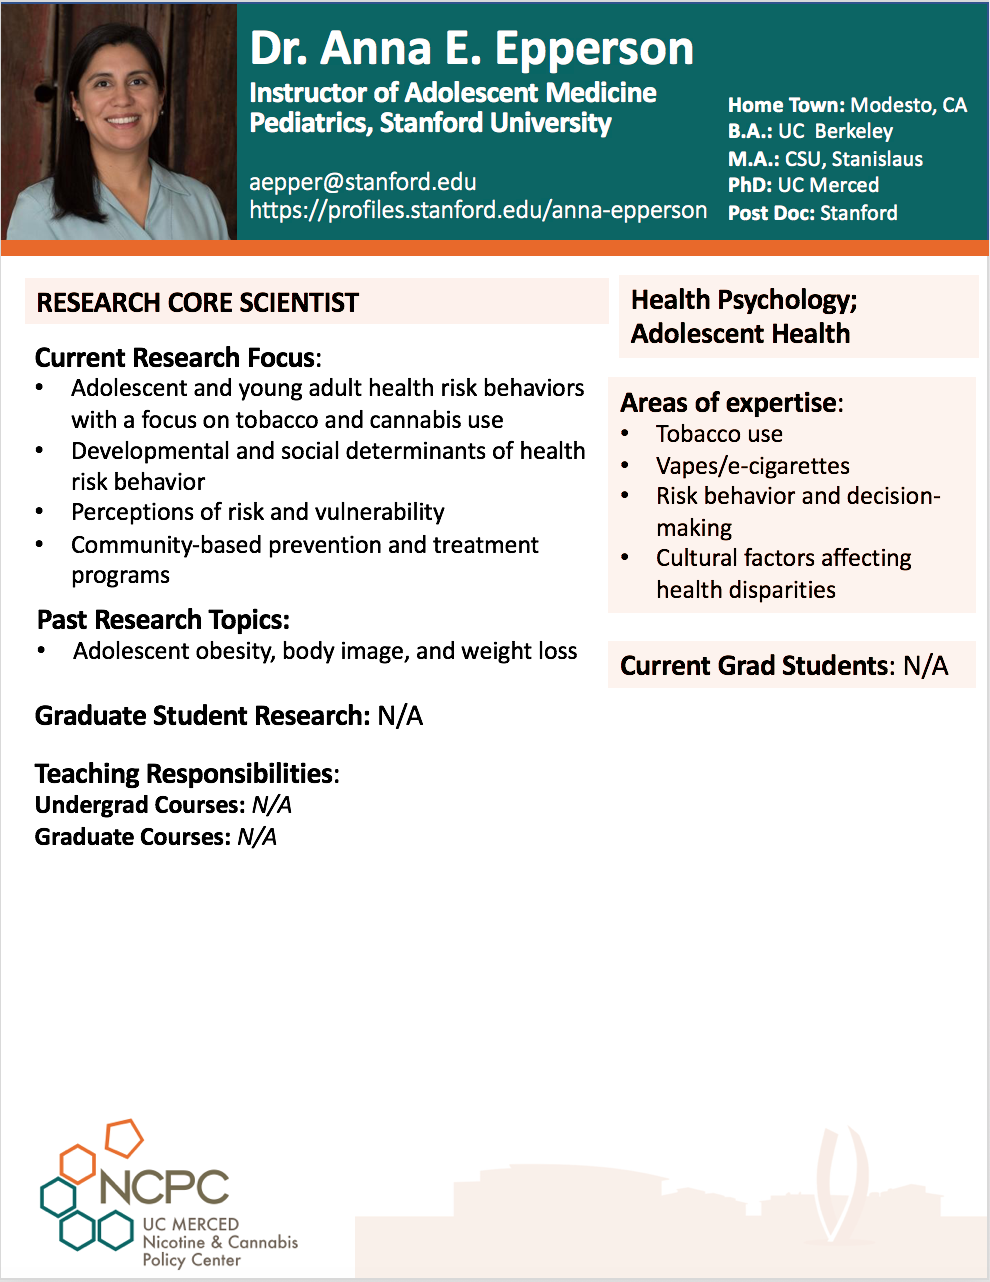 Dr. Anna Epperson NCPC Profile